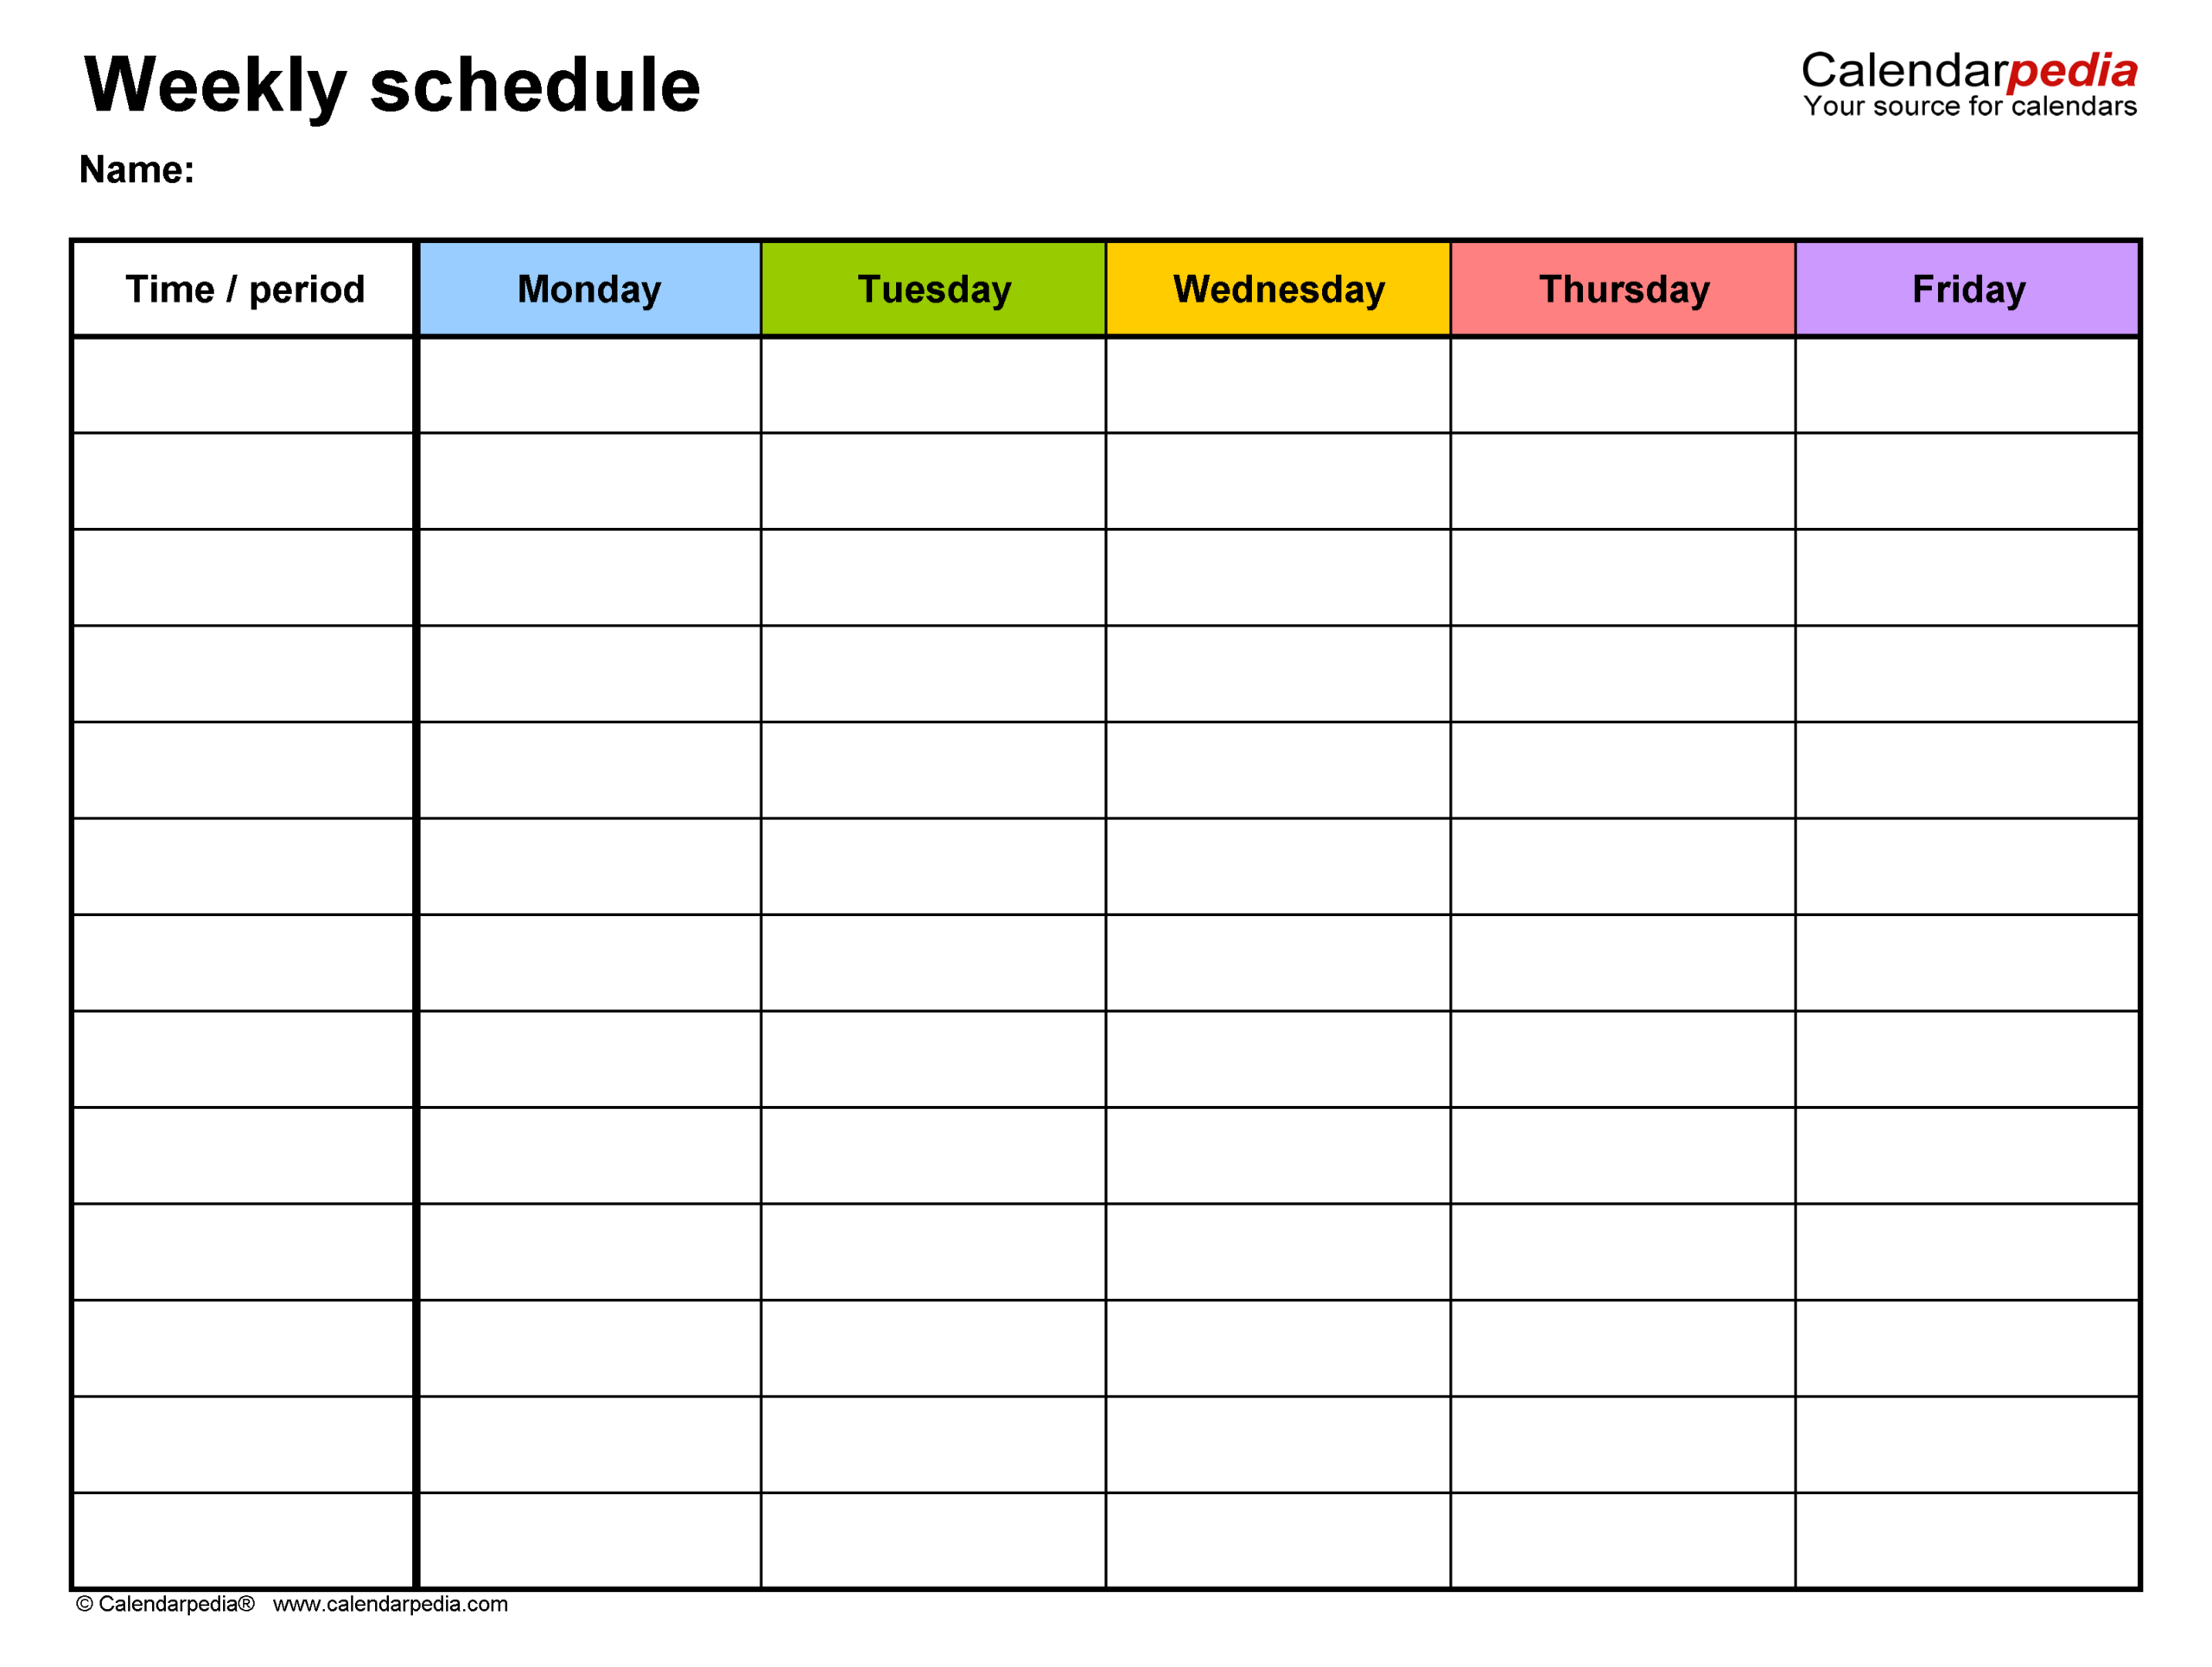 Free Weekly Schedule Templates For Word  18 Templates inside Free Printable 5 Day Monthly Calendar